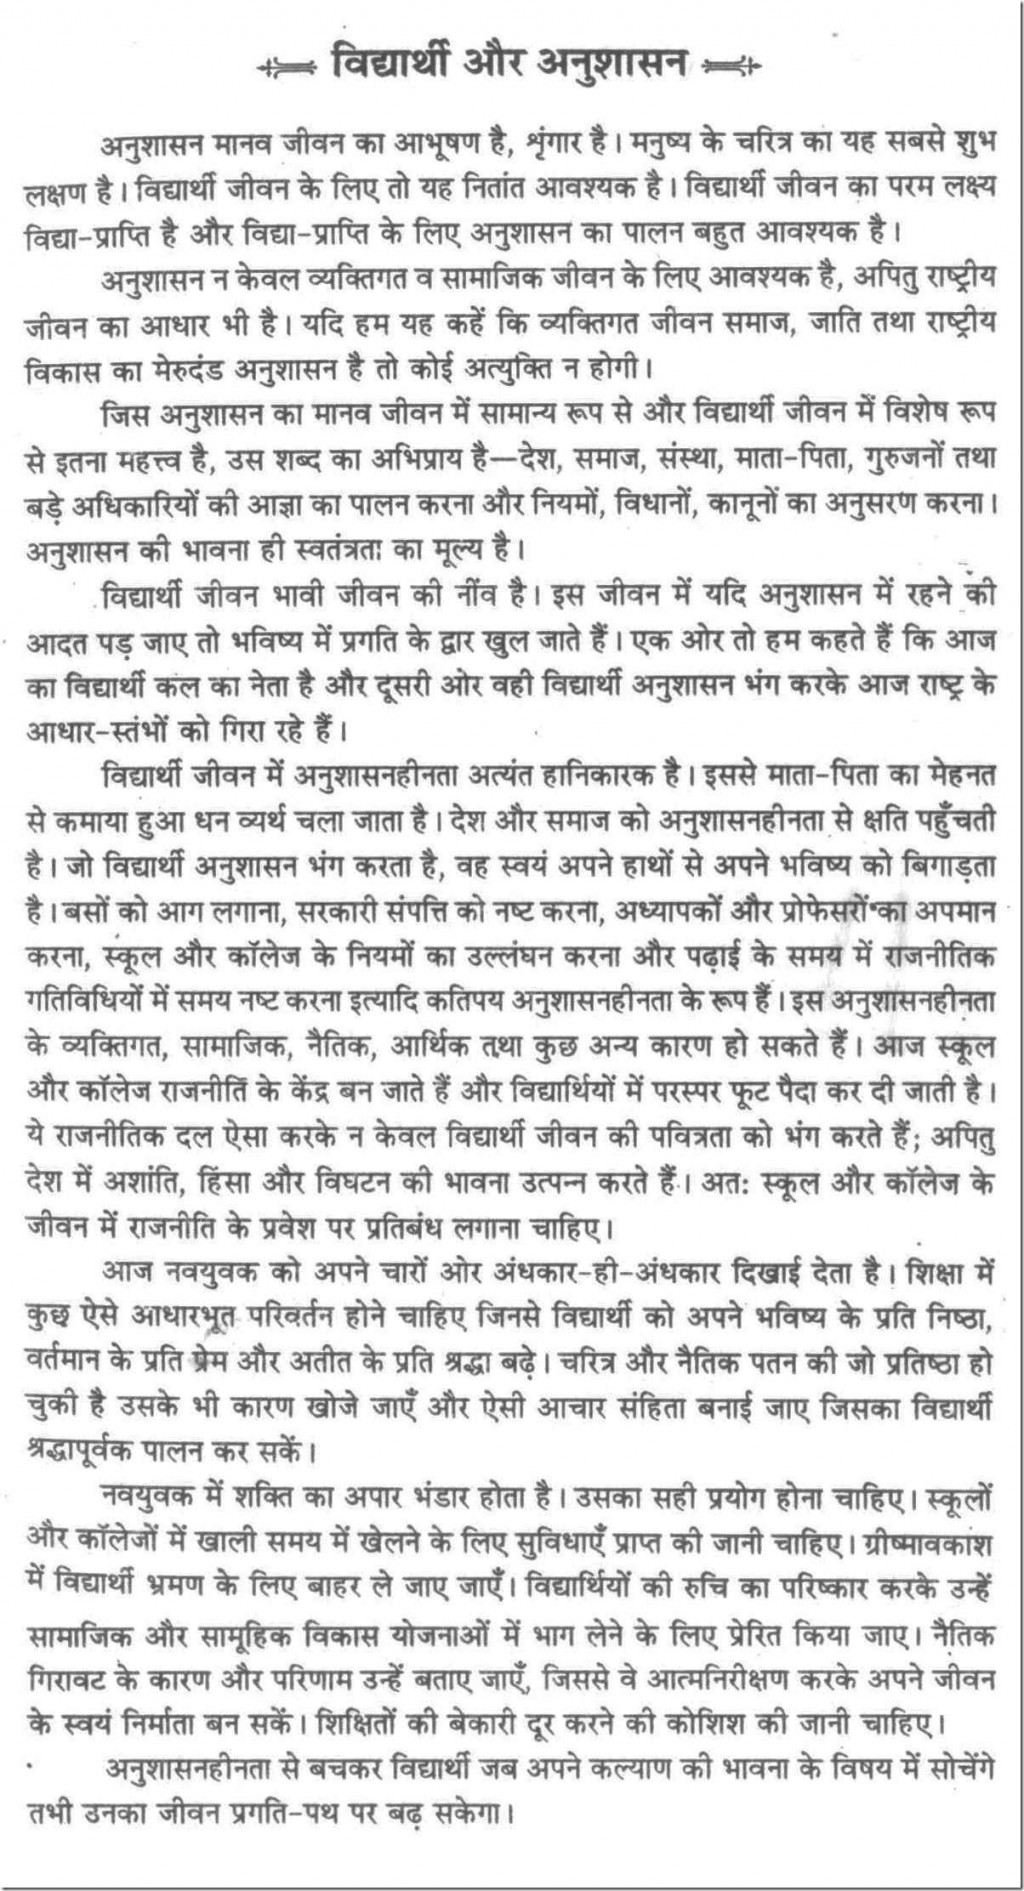 012 Essay Example On Punctuality And Discipline Write Short For School Students In At Home Hindi Easy Class Urdu Life English Our Stunning Large